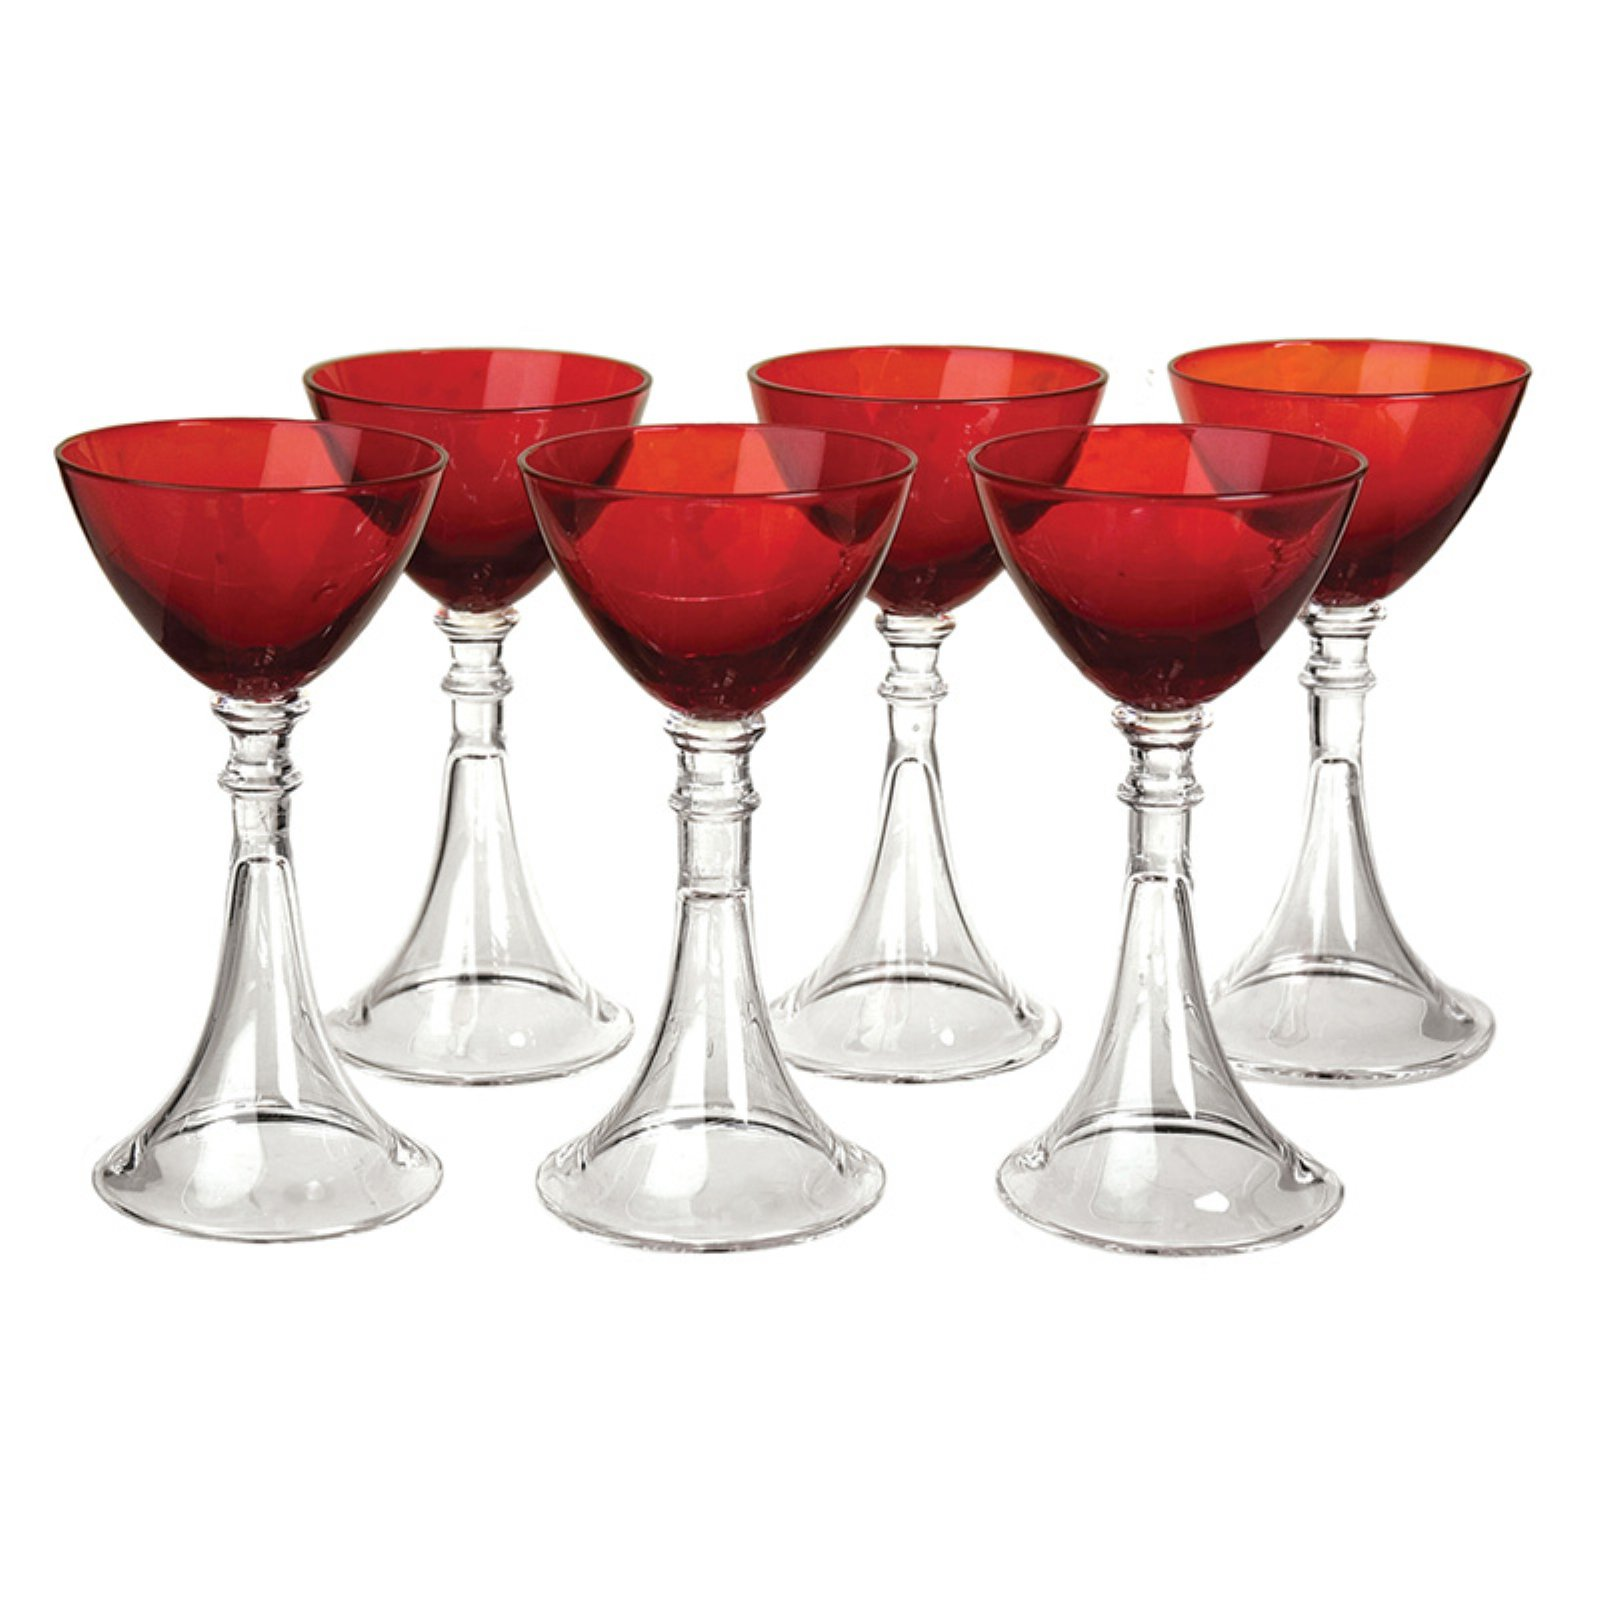 Artland Veranda Ruby Cordial Glass Set of 6 by Artland